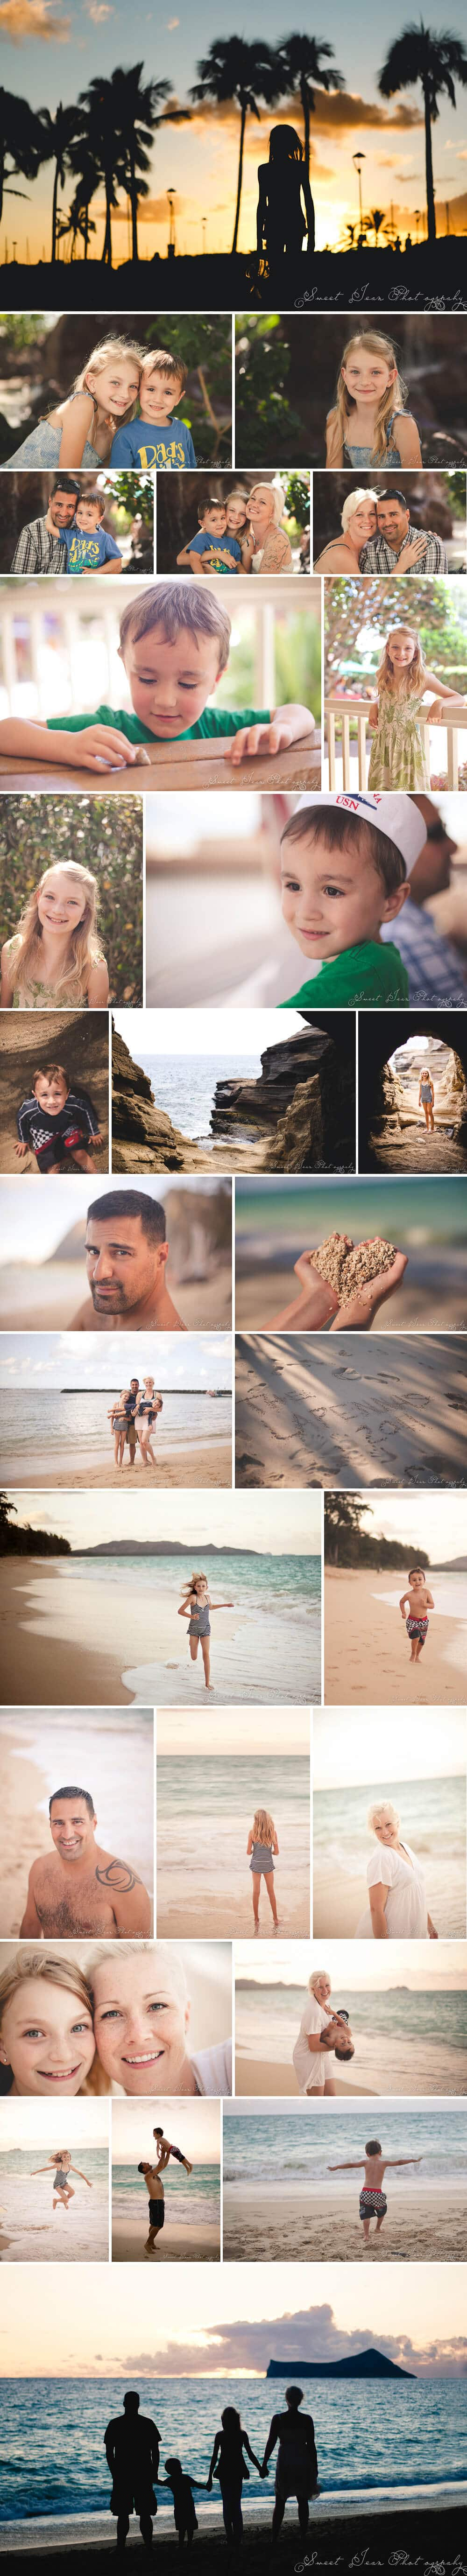 Our Hawaii Vacation – My Family